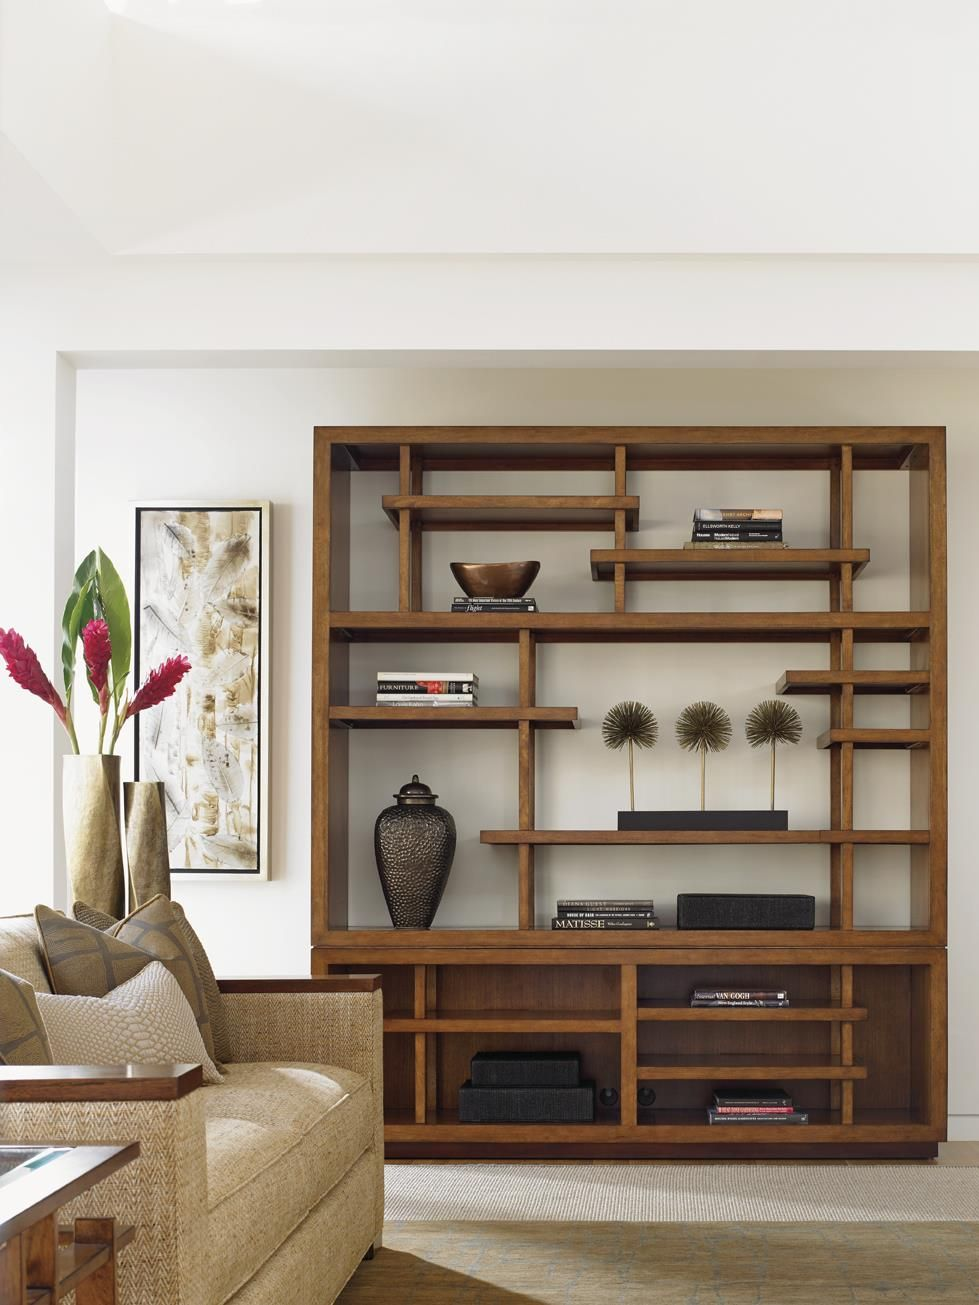 Tv Unit In Living Room: Create A Room Of Balance And Zen Tranquility With This Pan